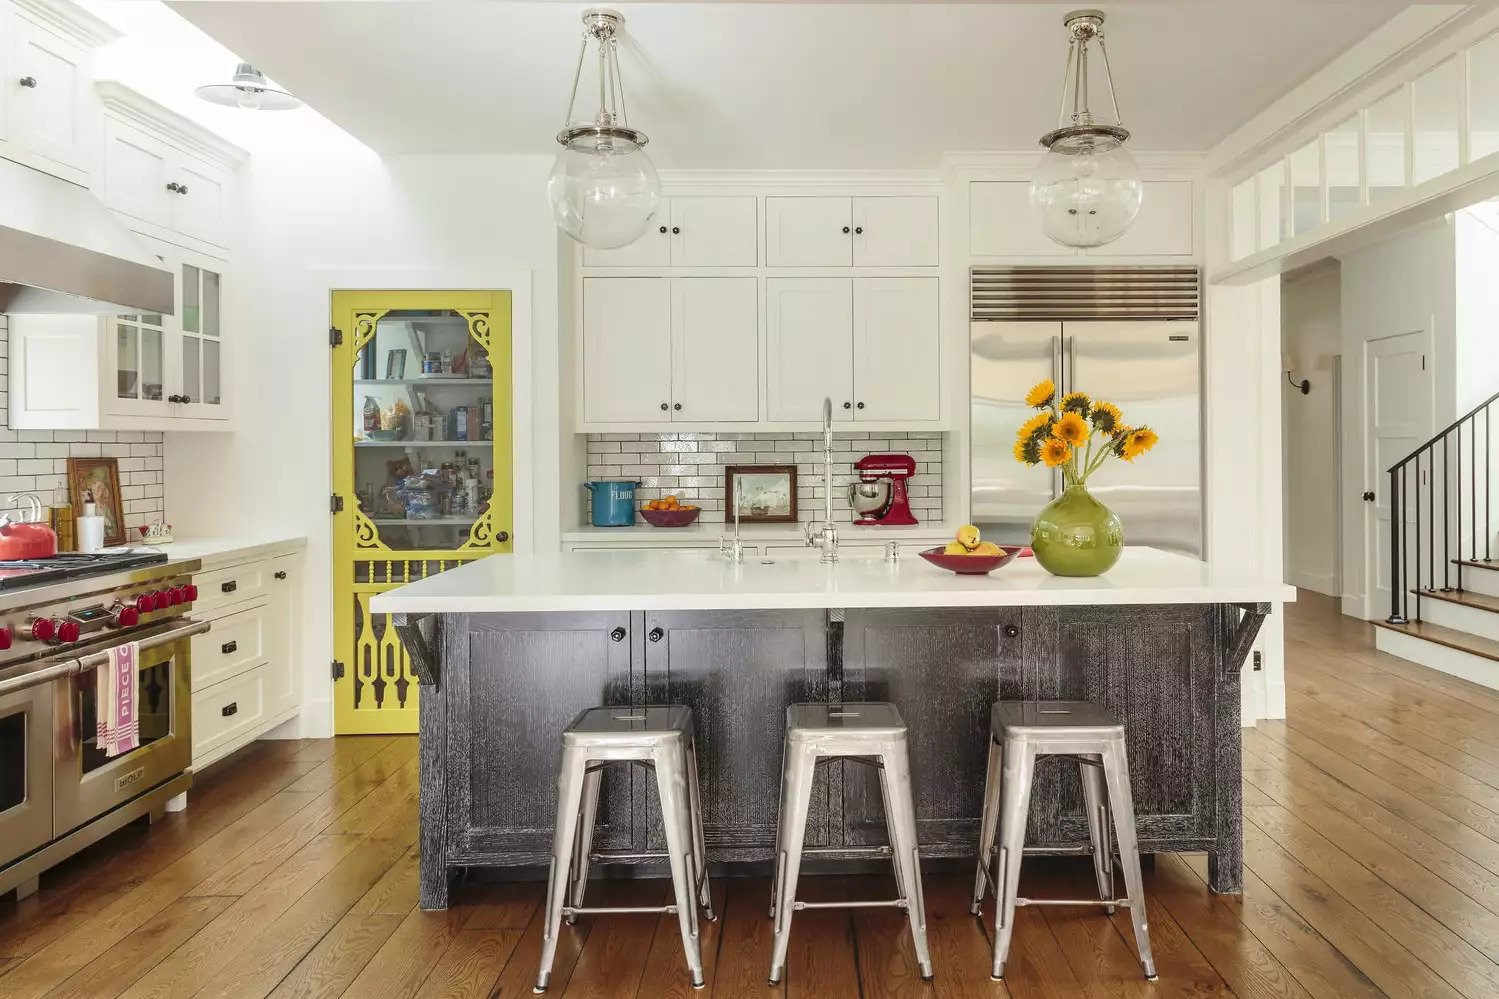 8. Use Colorful Antiques To Revive Your Kitchen Countertop